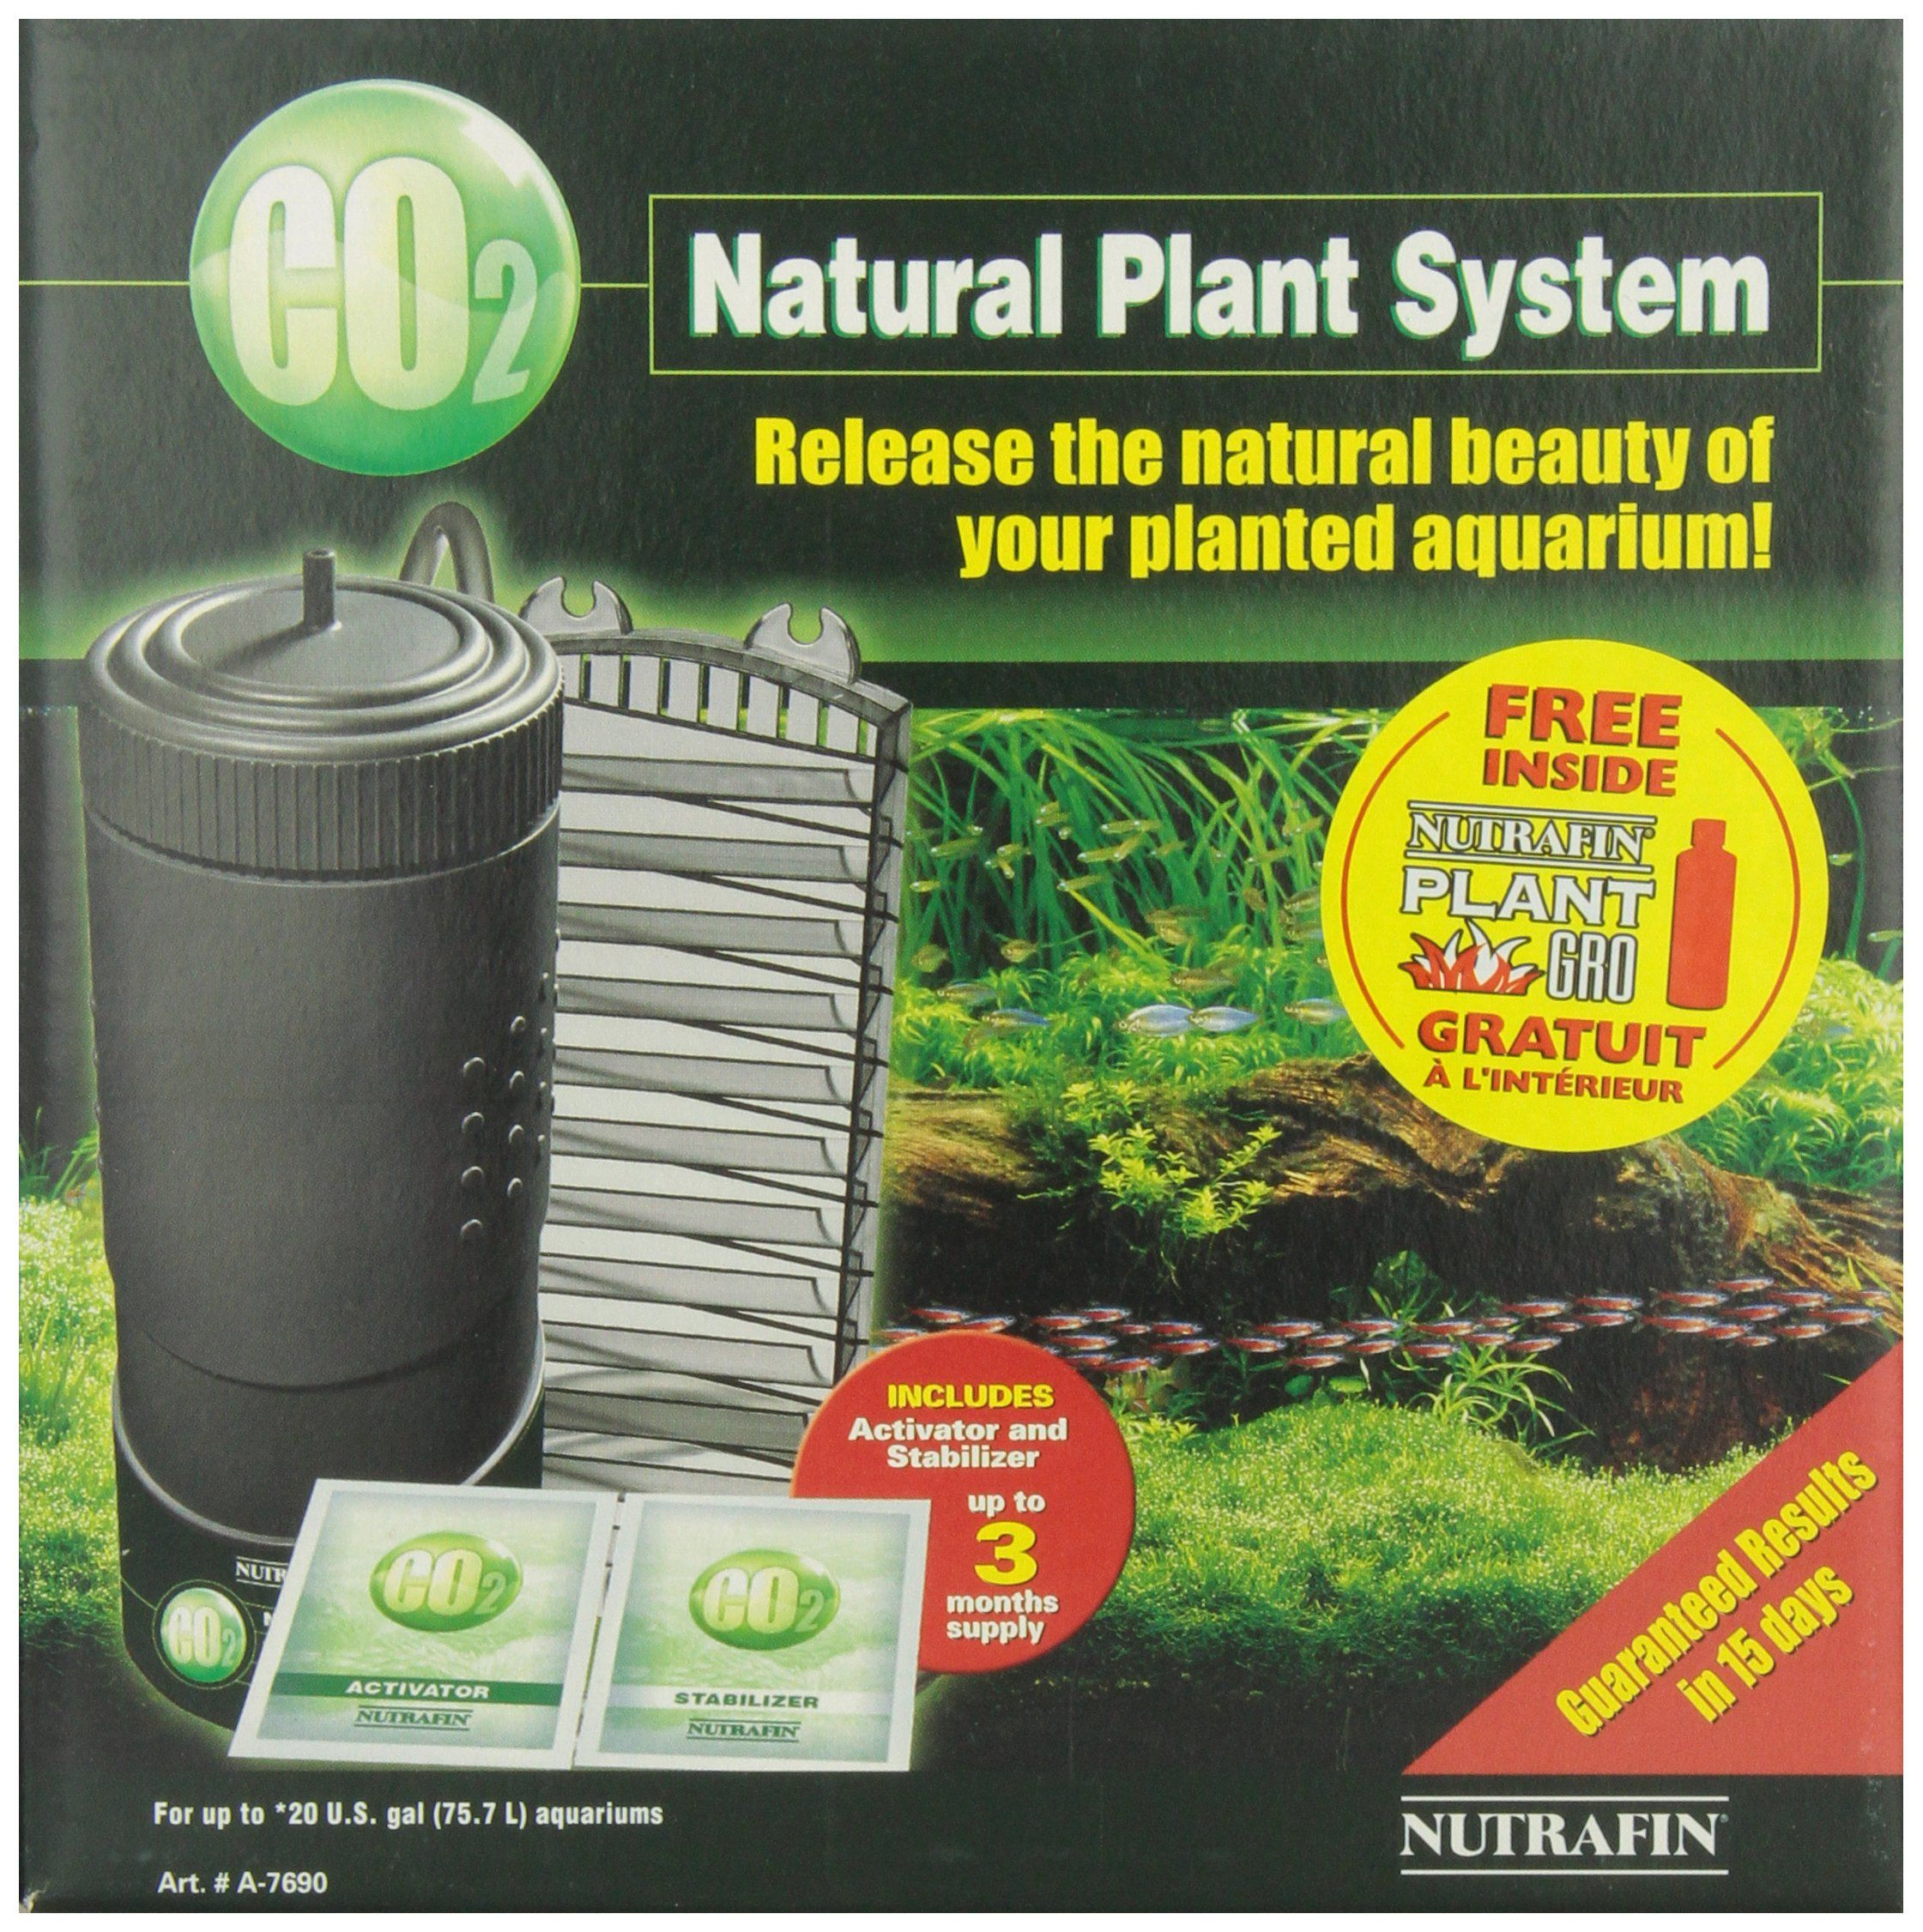 Nutrafin CO2 Natural Plant System -- DIY CO2 recipe for this